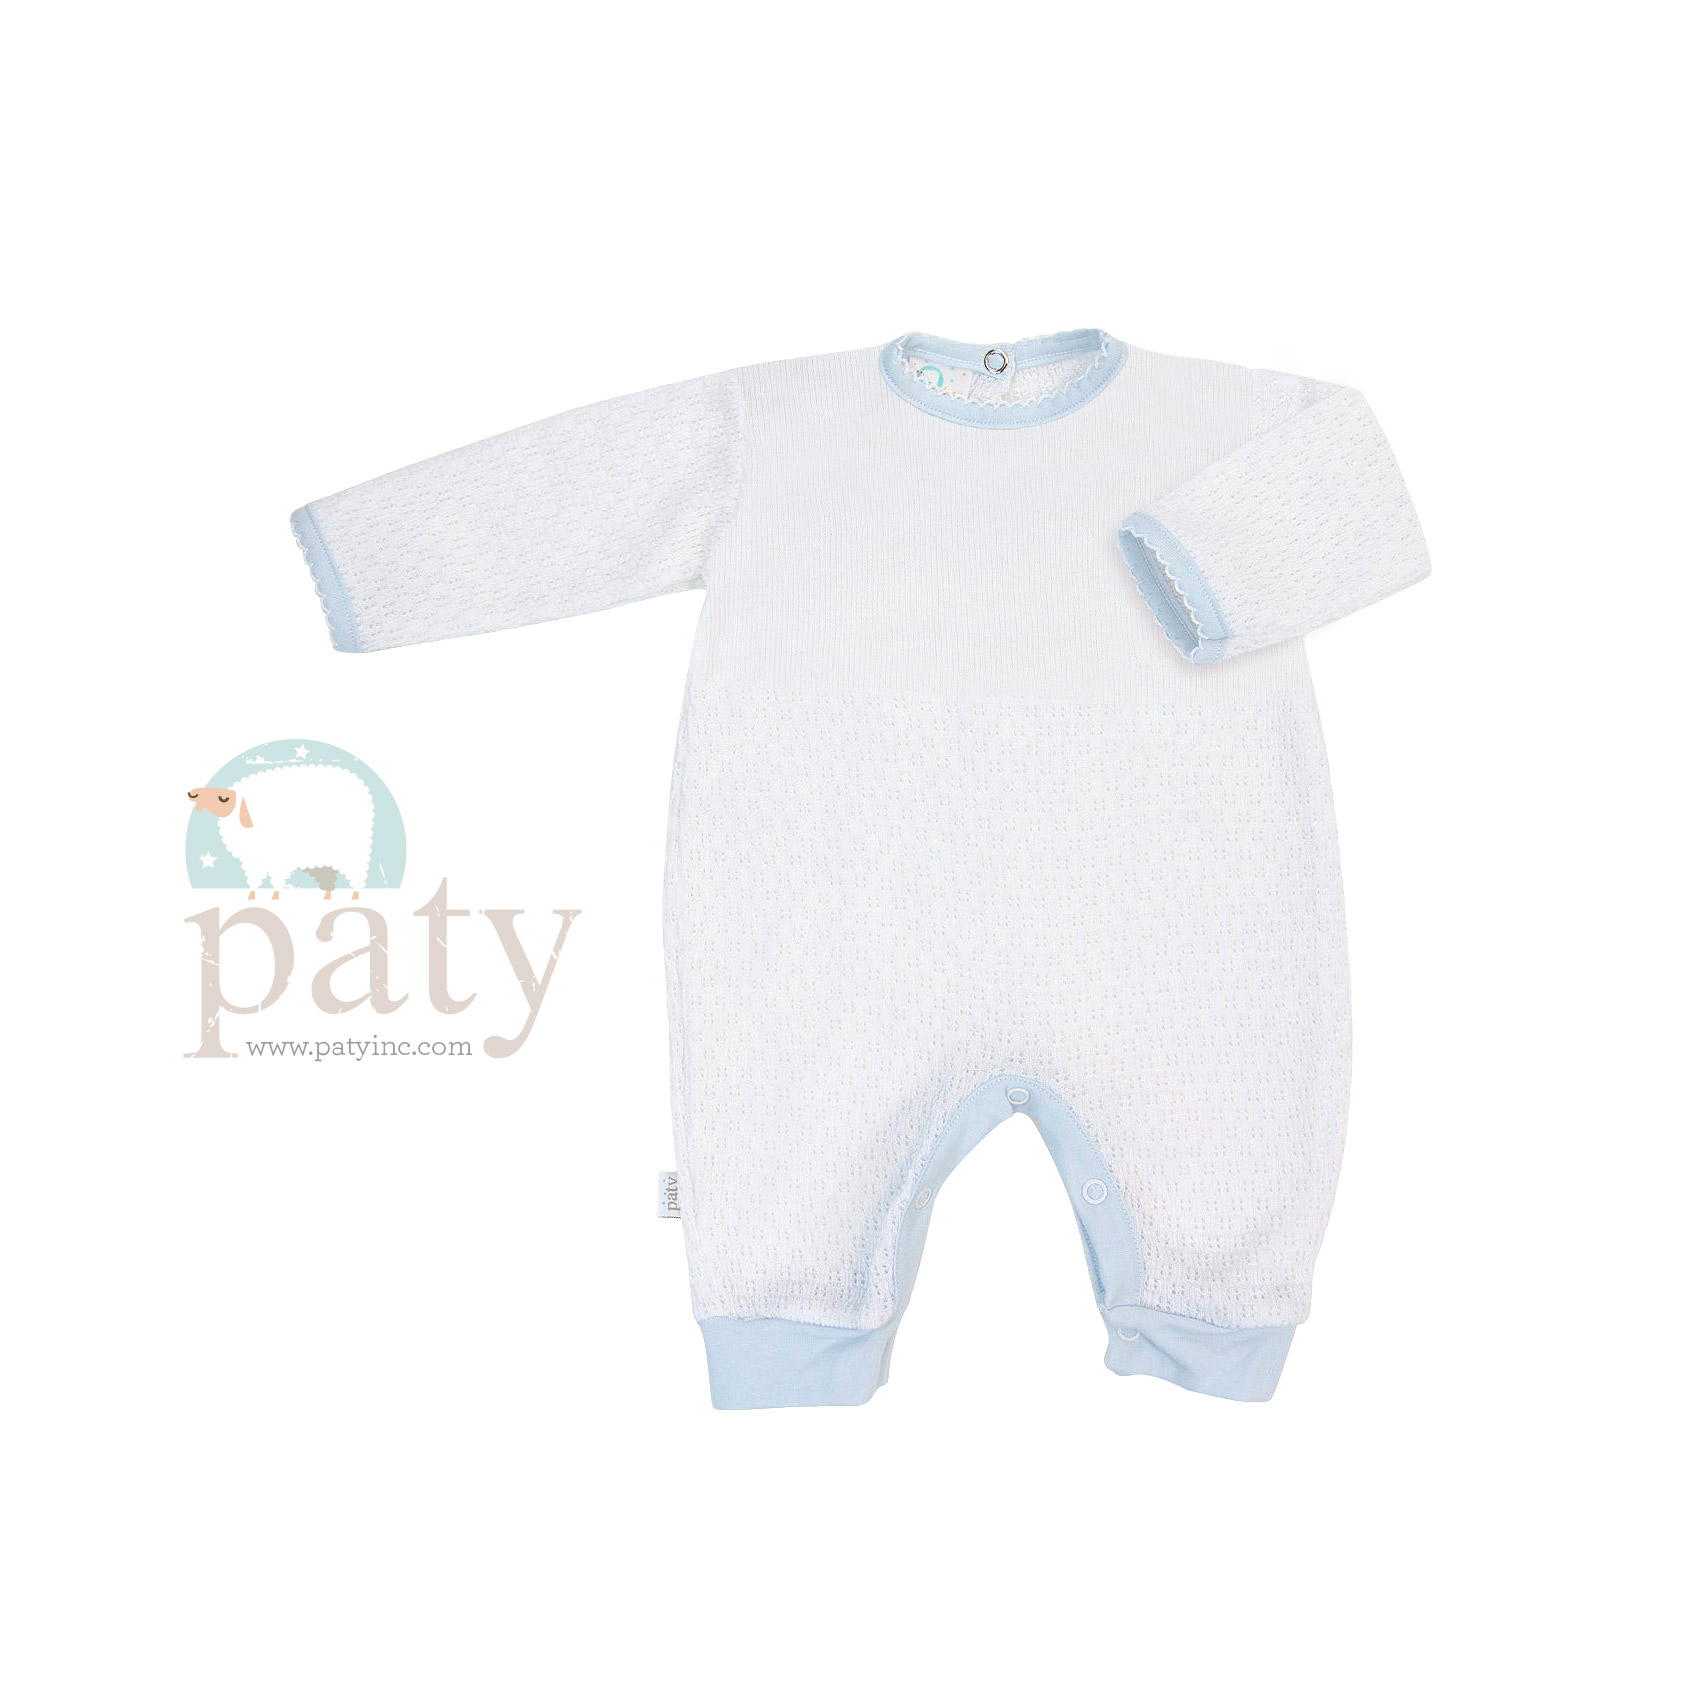 White Paty Knit Romper with Blue Cotton Trim Option